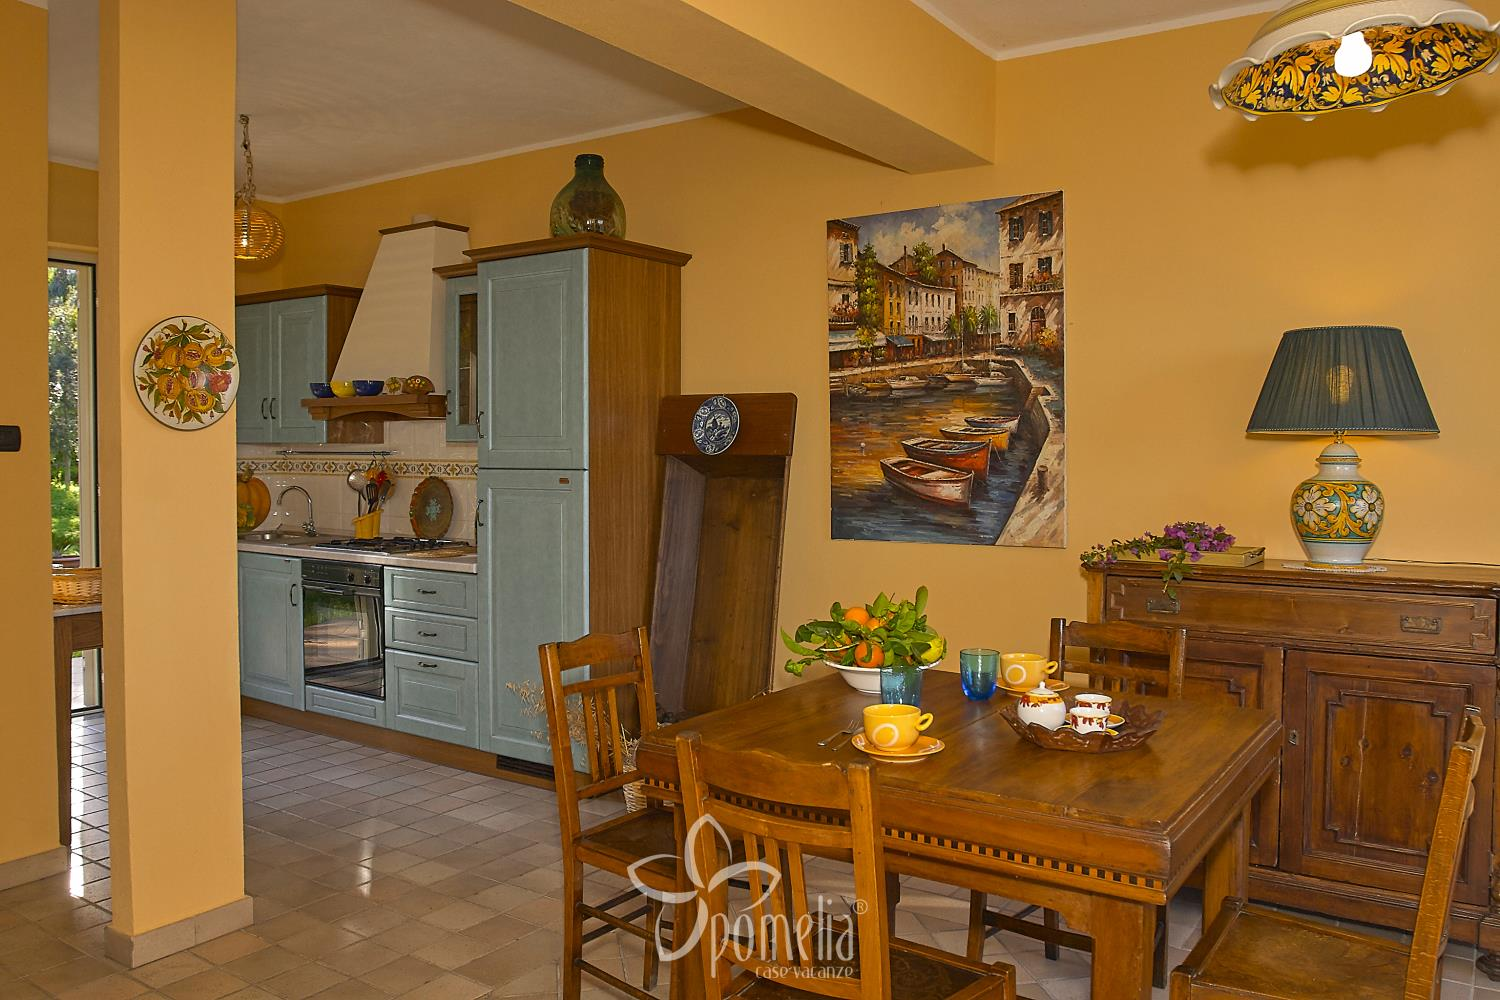 Marena, villa at 50 mt. from the beach in Gioisa Marea (Messina) - Kitchen